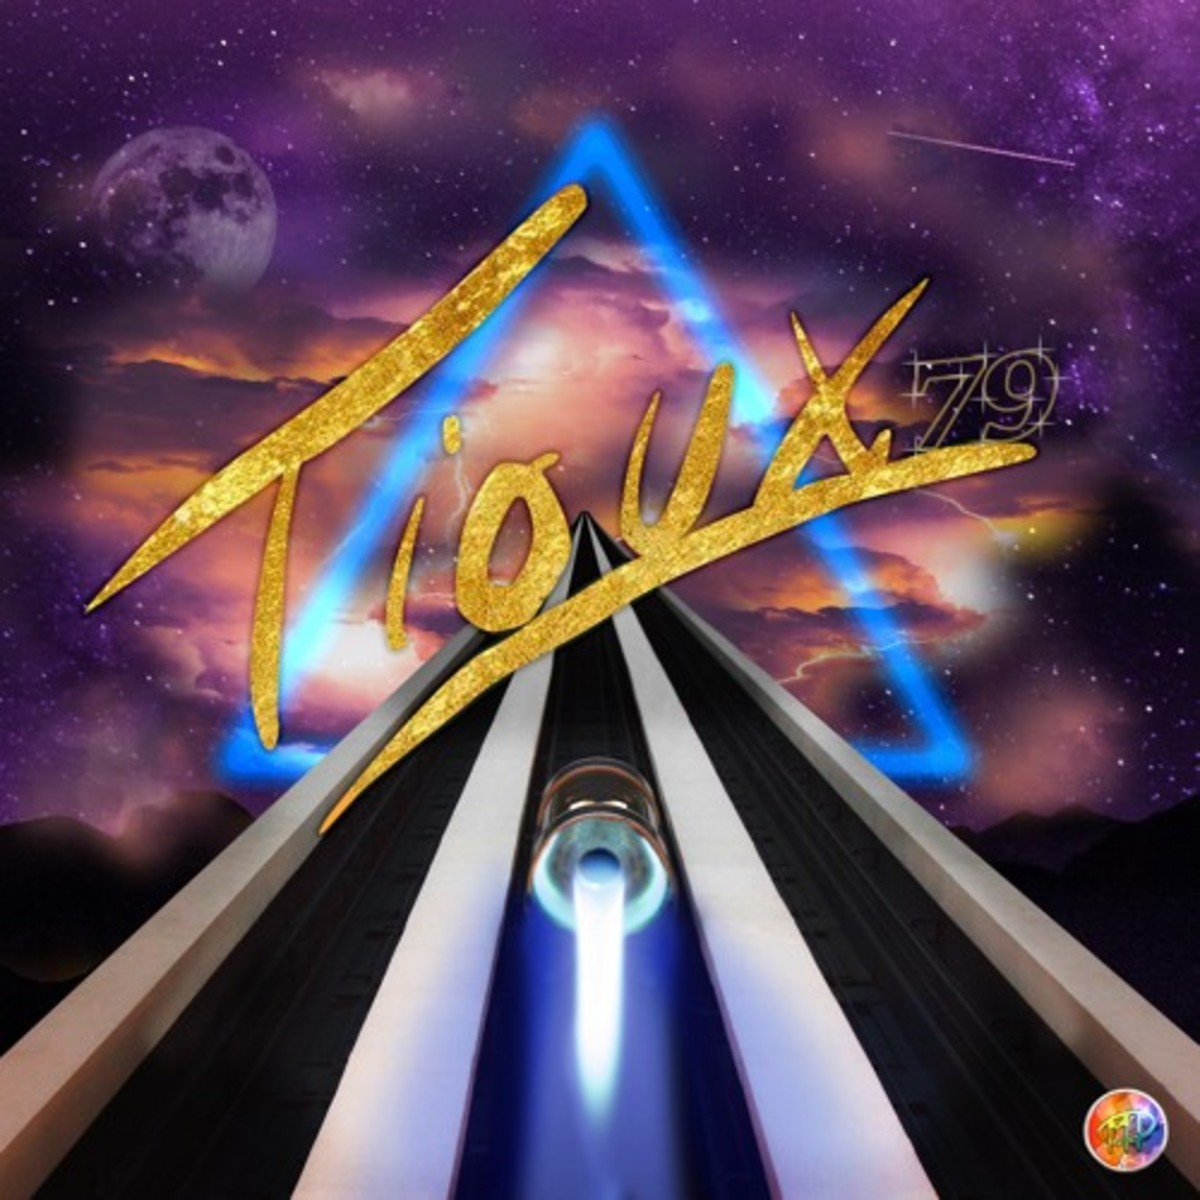 synth-single-review-alive-by-tioux79